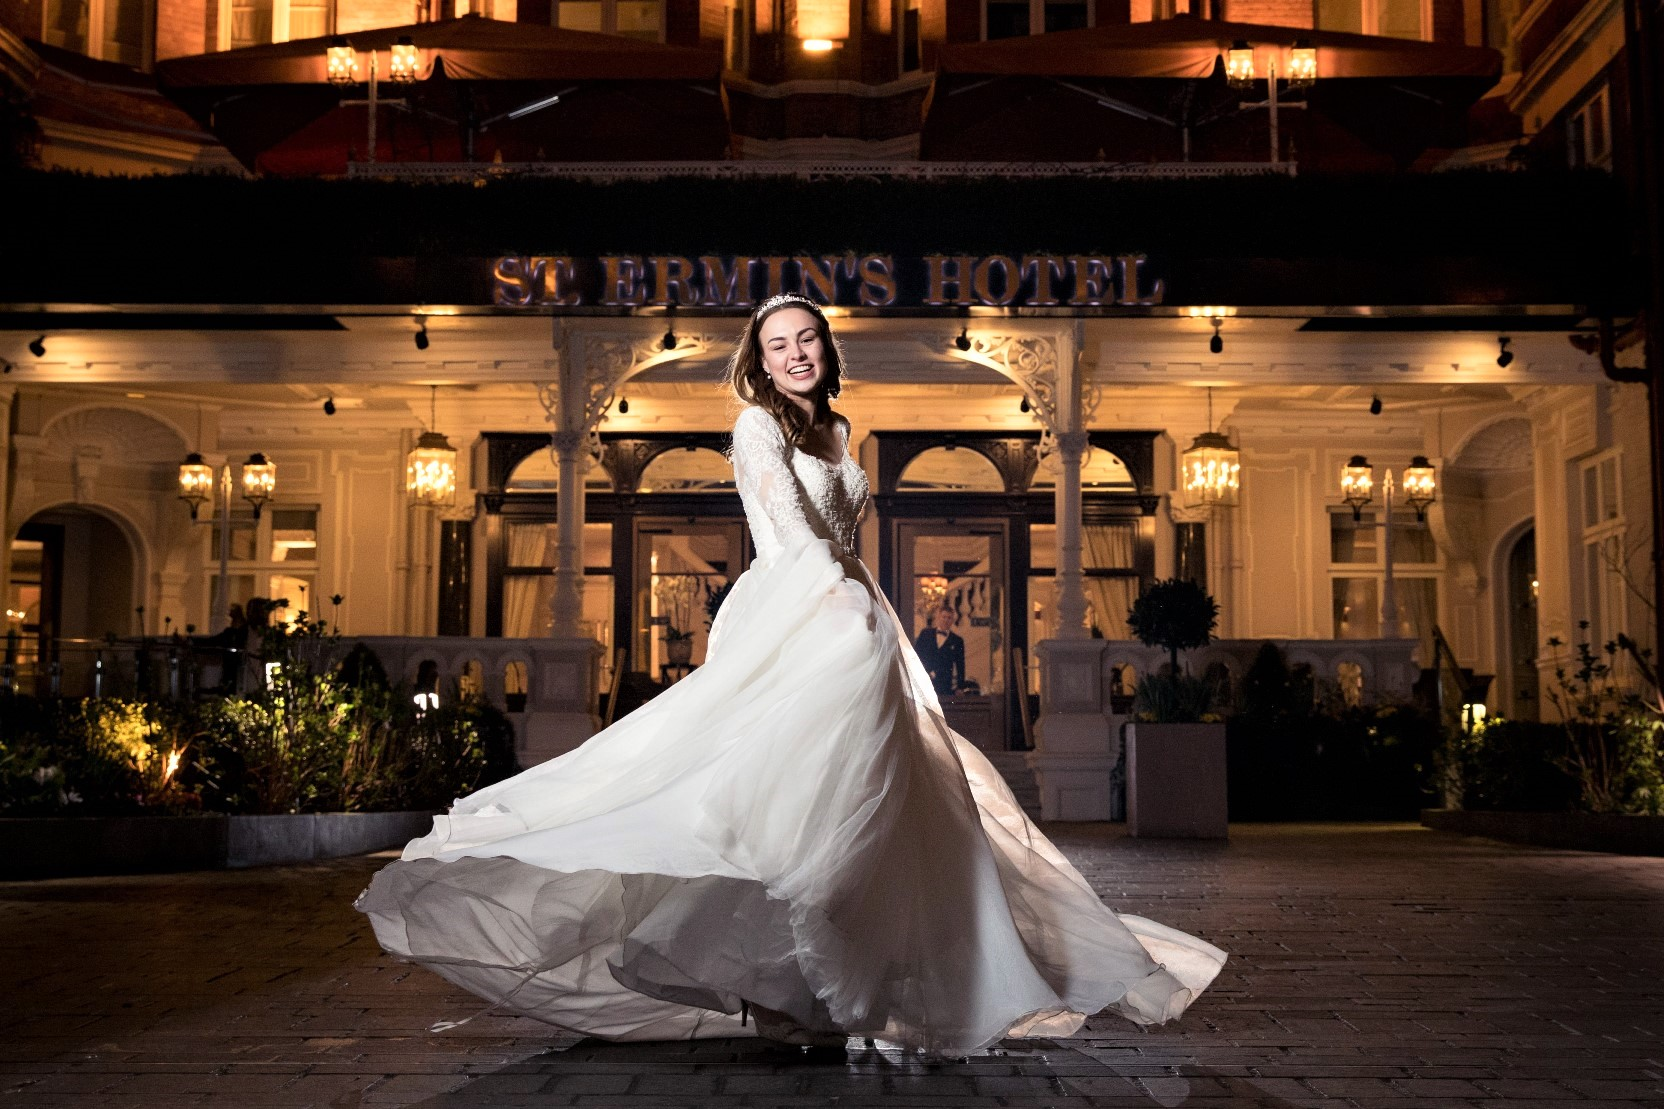 06 bride flowing white dress twirls outside luxury 5star st.ermins hotel london venue oxfordshire wedding photography 1024x682 1024x682